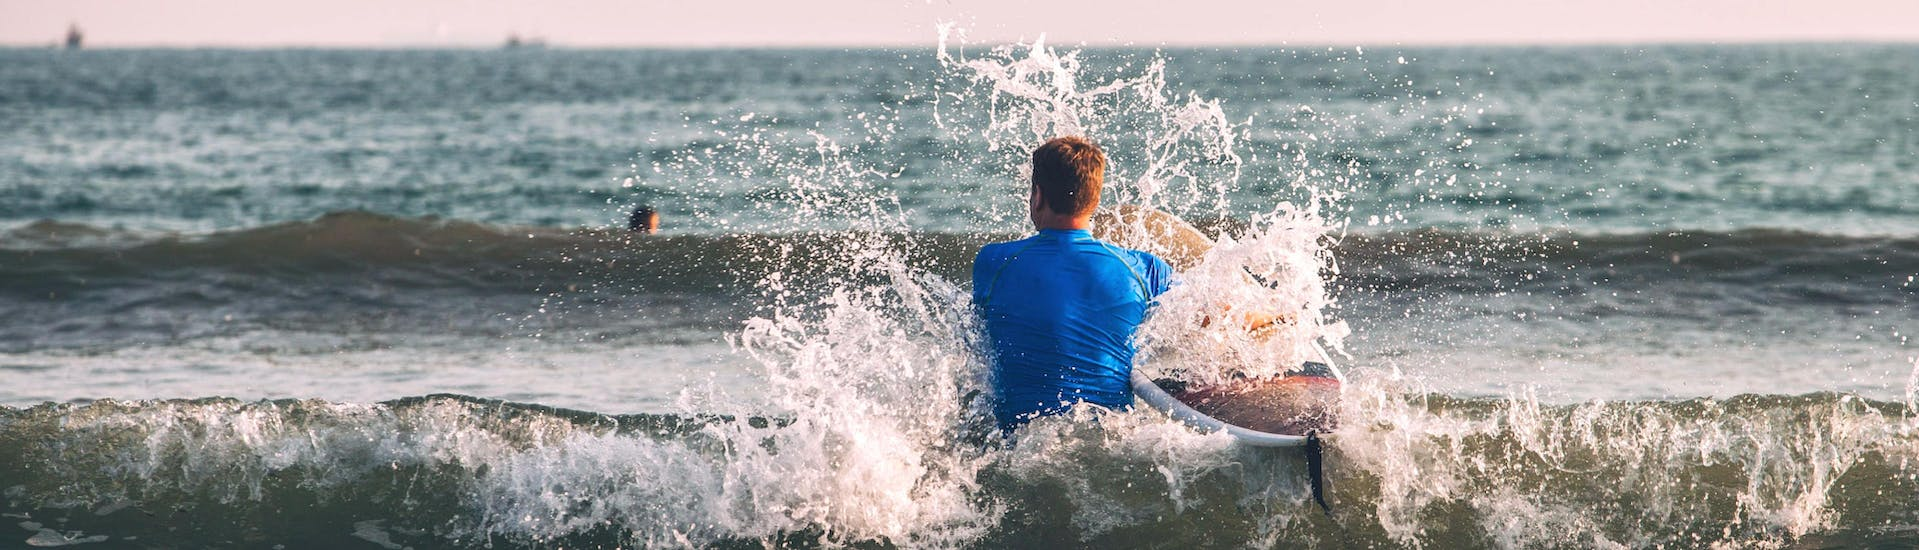 A young man is wading through the water with his board while surfing in Hossegor.